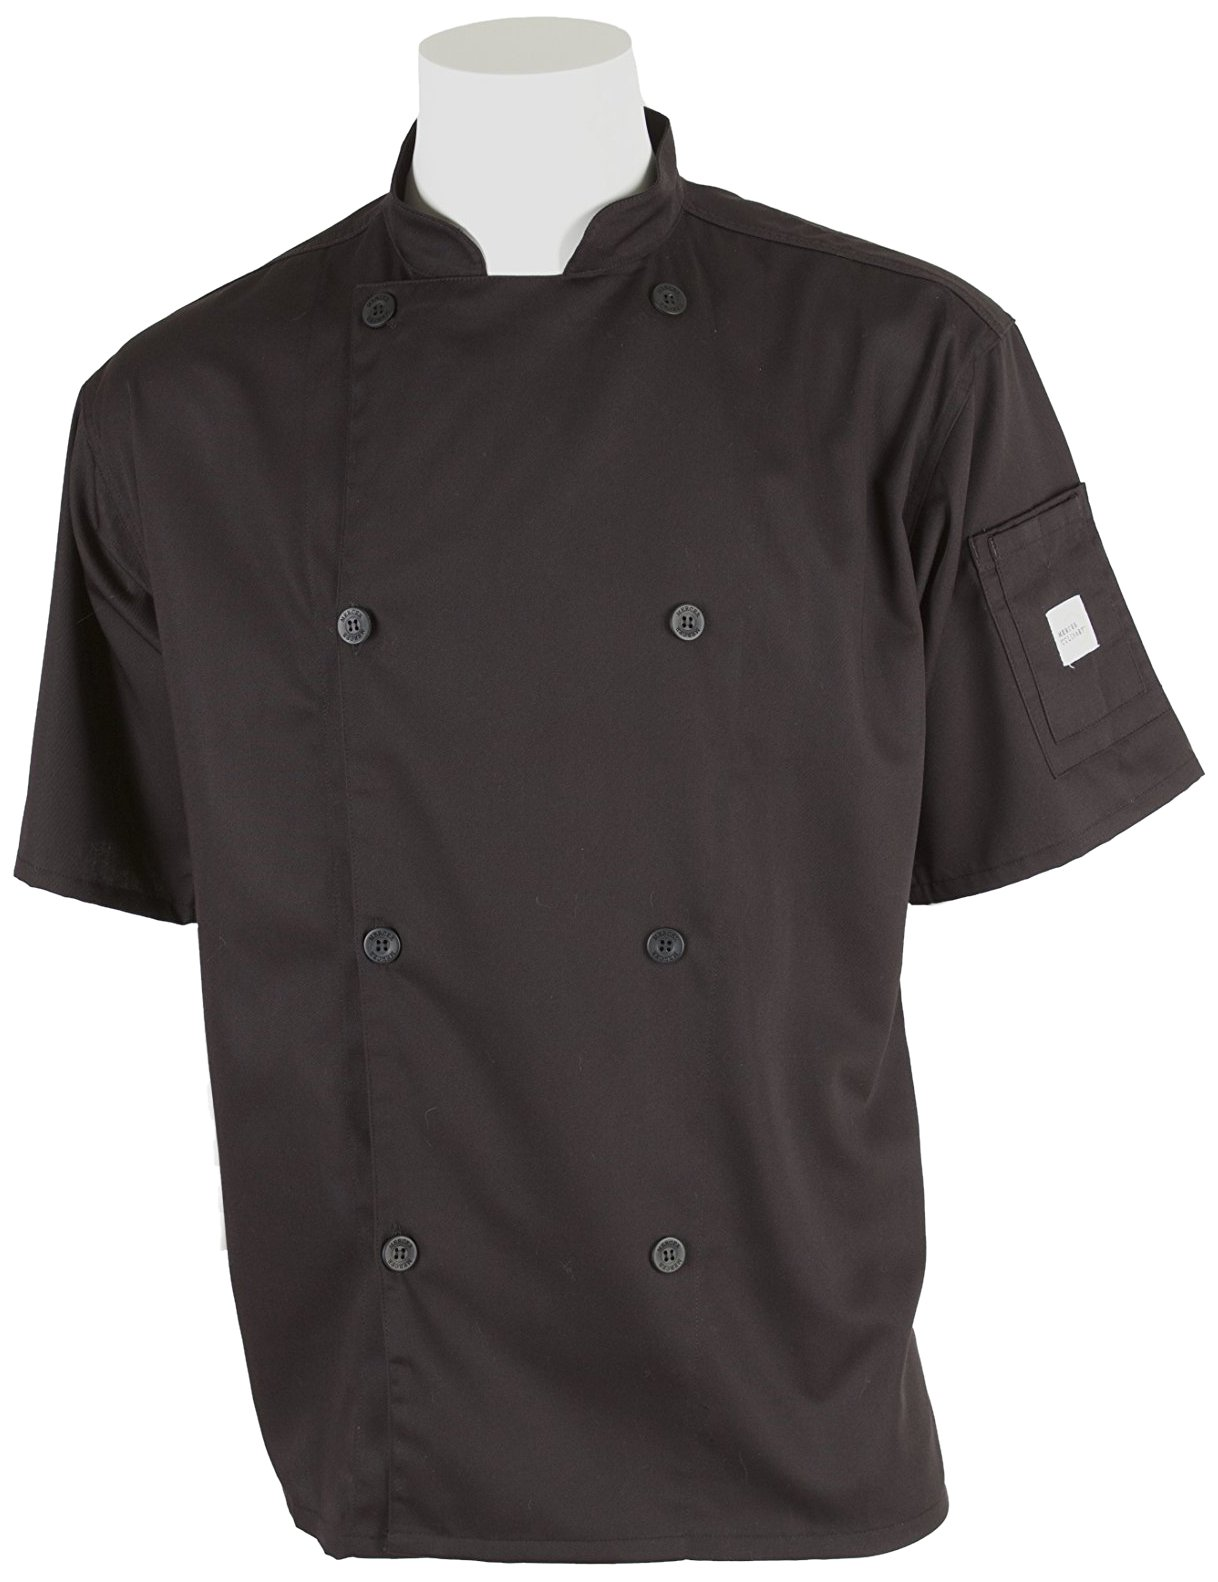 Mercer Culinary M61012BK4X Genesis Men's Short Sleeve Chef Jacket with Traditional Buttons, 4X-Large, Black by Mercer Culinary